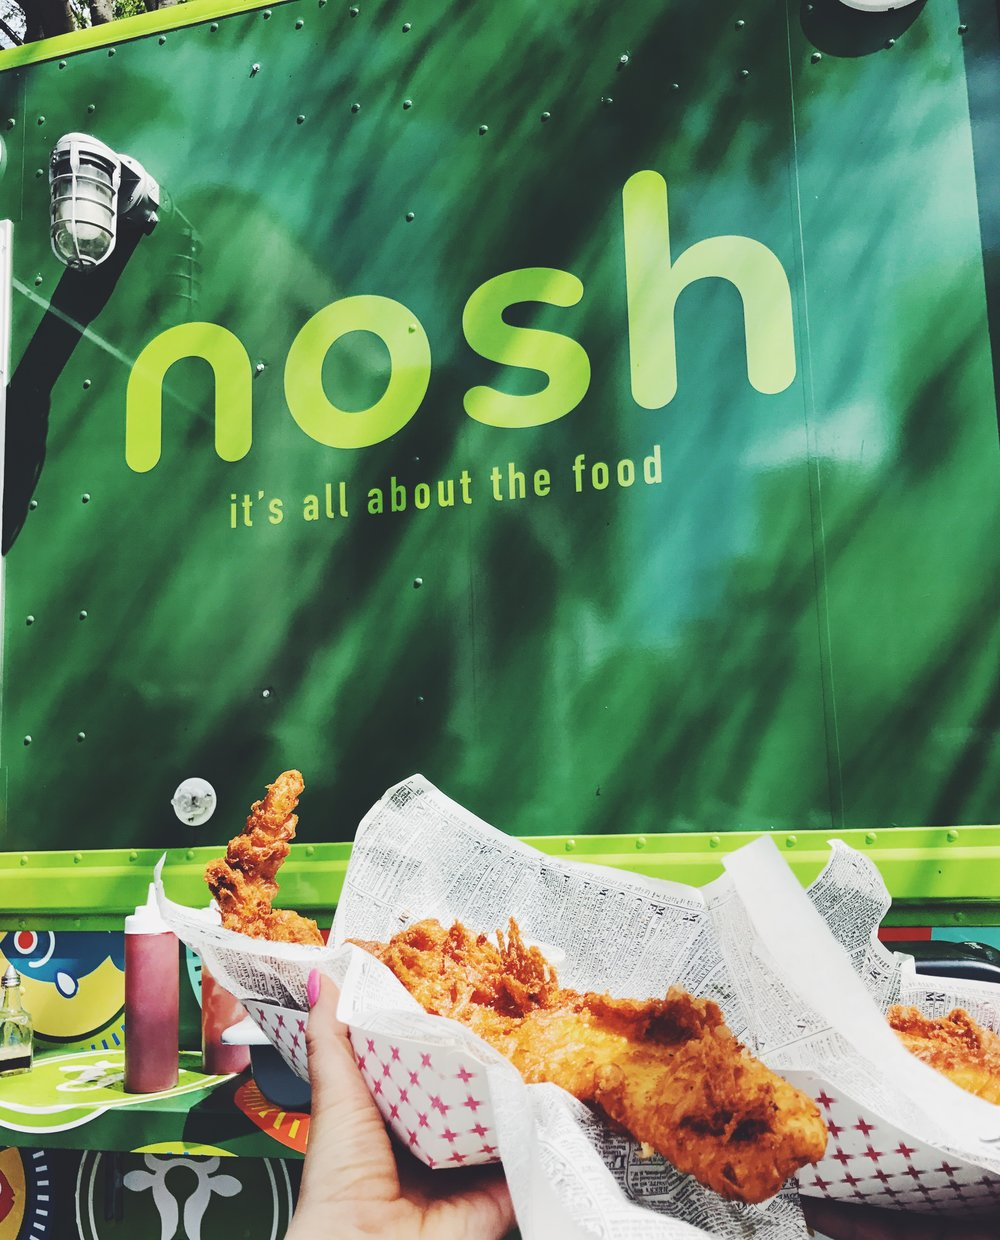 nosh food truck fish & chips